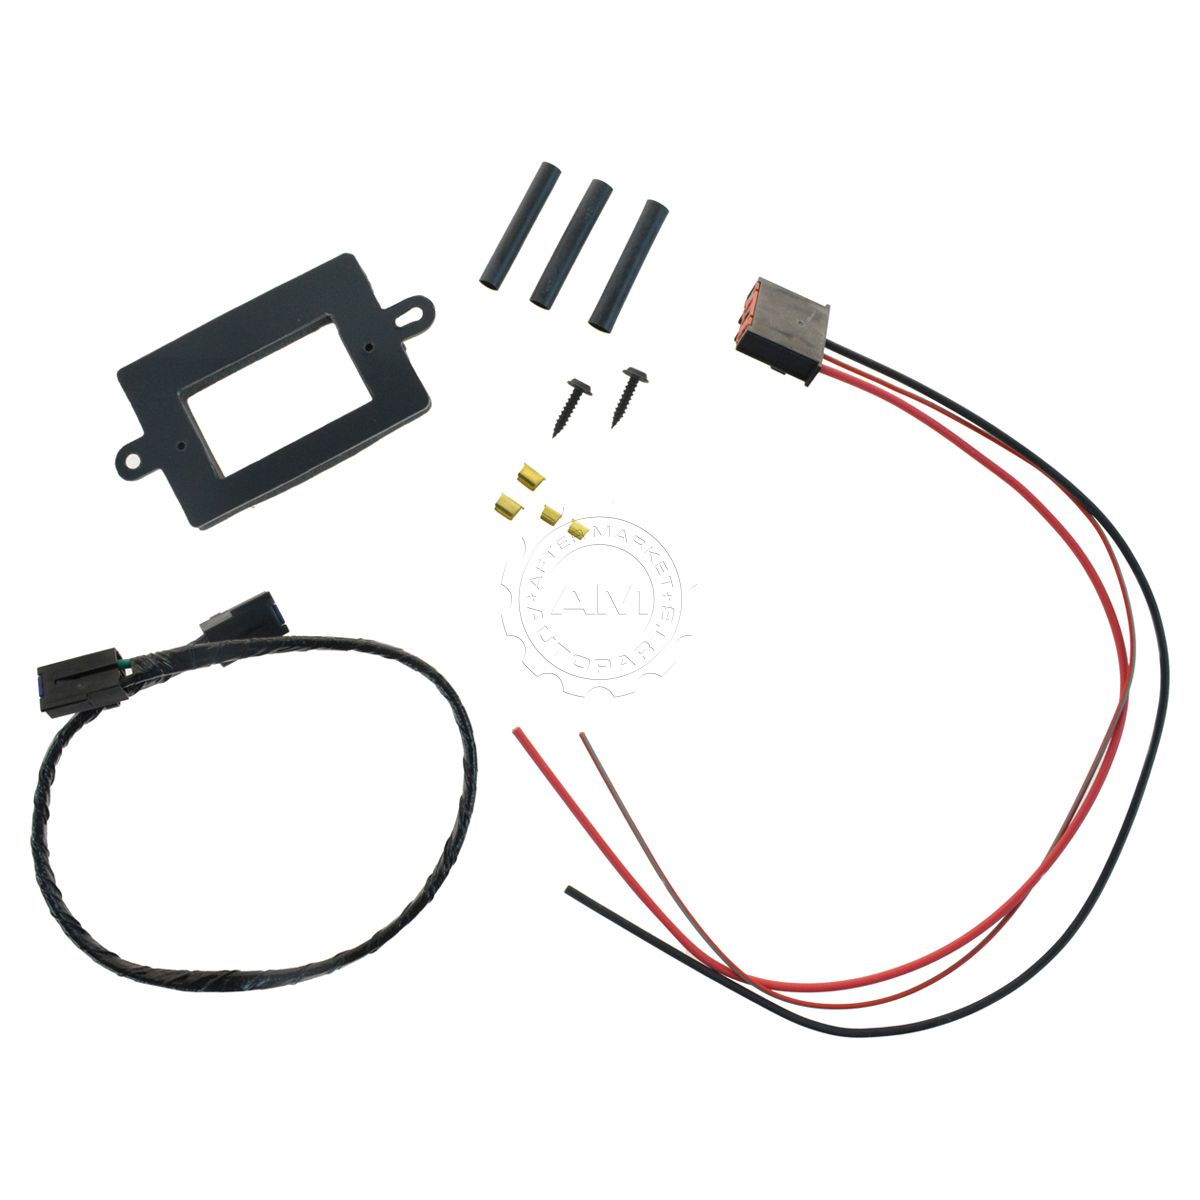 AM 3923458481 atc blower motor resistor wiring harness upgrade kit for 99 04 grand